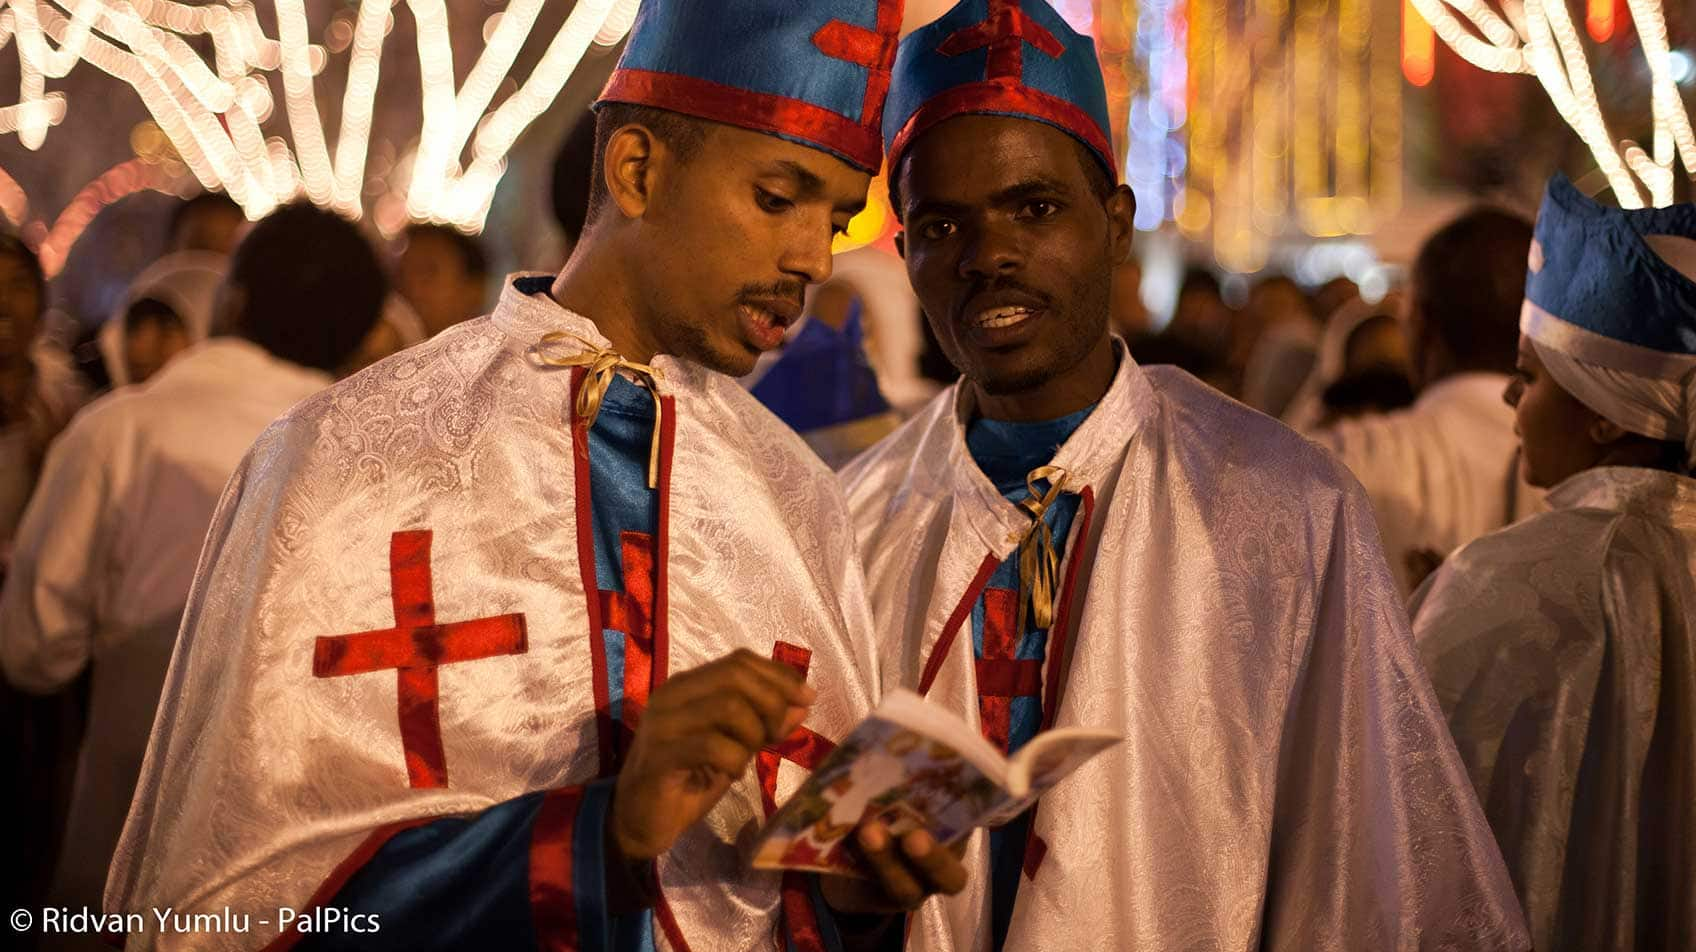 coptic christians from ethiopia celebrating christmas - When Is Orthodox Christmas